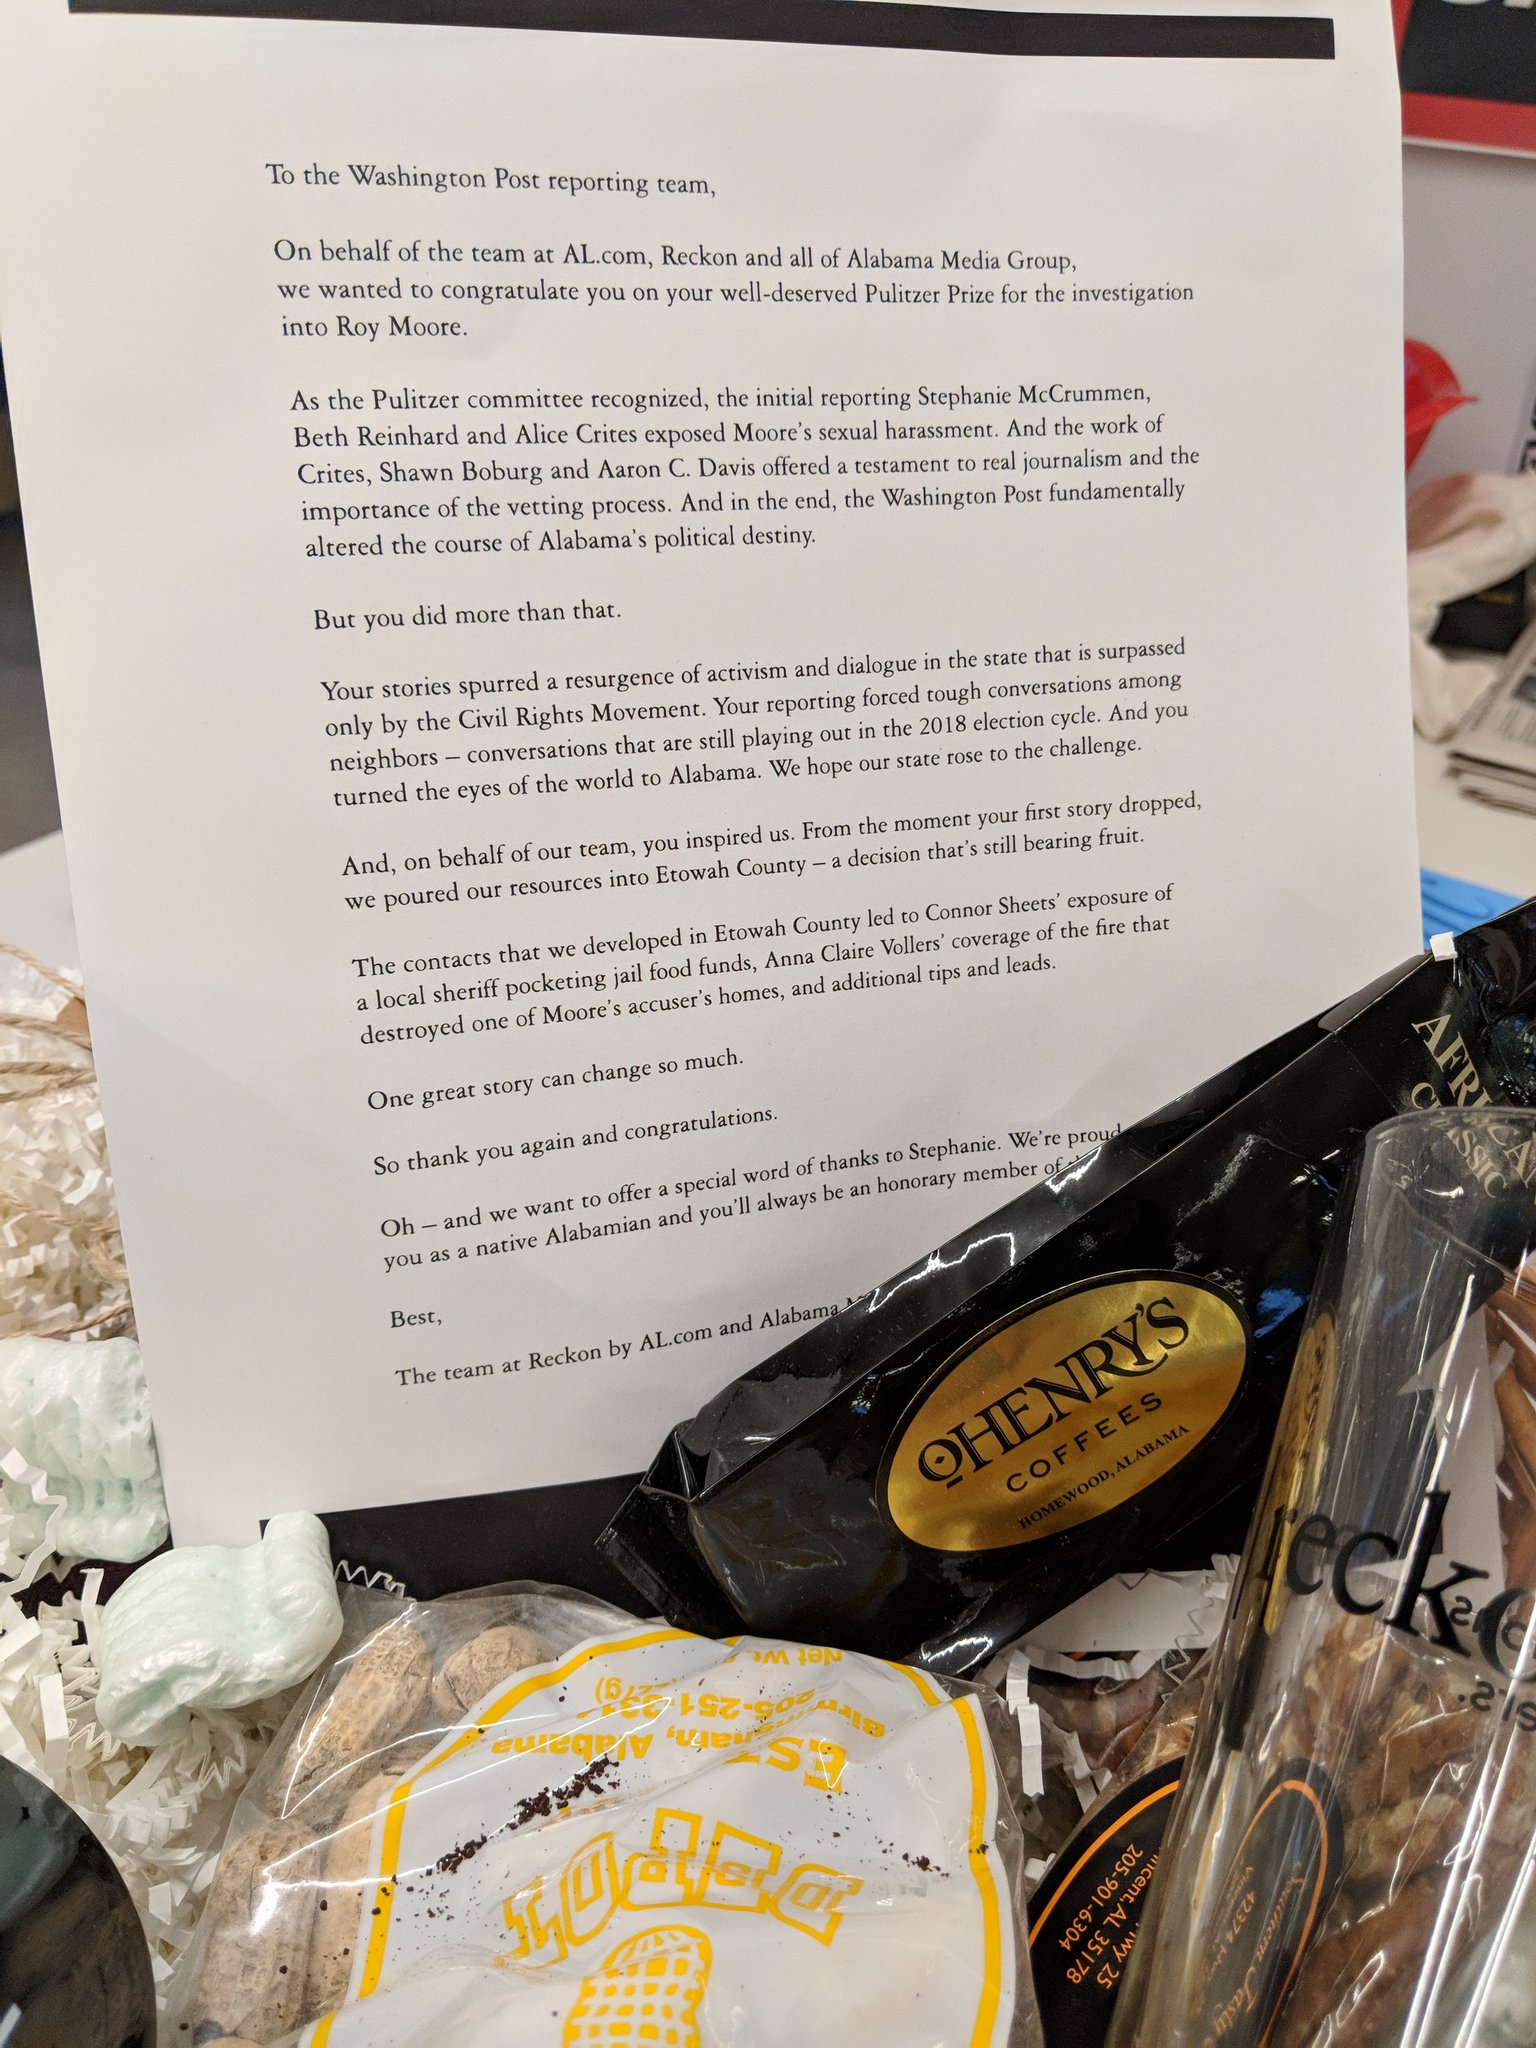 What a lovely gesture from @reckonalabama @aldotcom congratulating @mccrummenWaPo @bethreinhard @alice_crites @ShawnBoburg @byaaroncdavis on their Pulitzer Prize-winning work. Thank you! https://t.co/eXcgzSvqm2